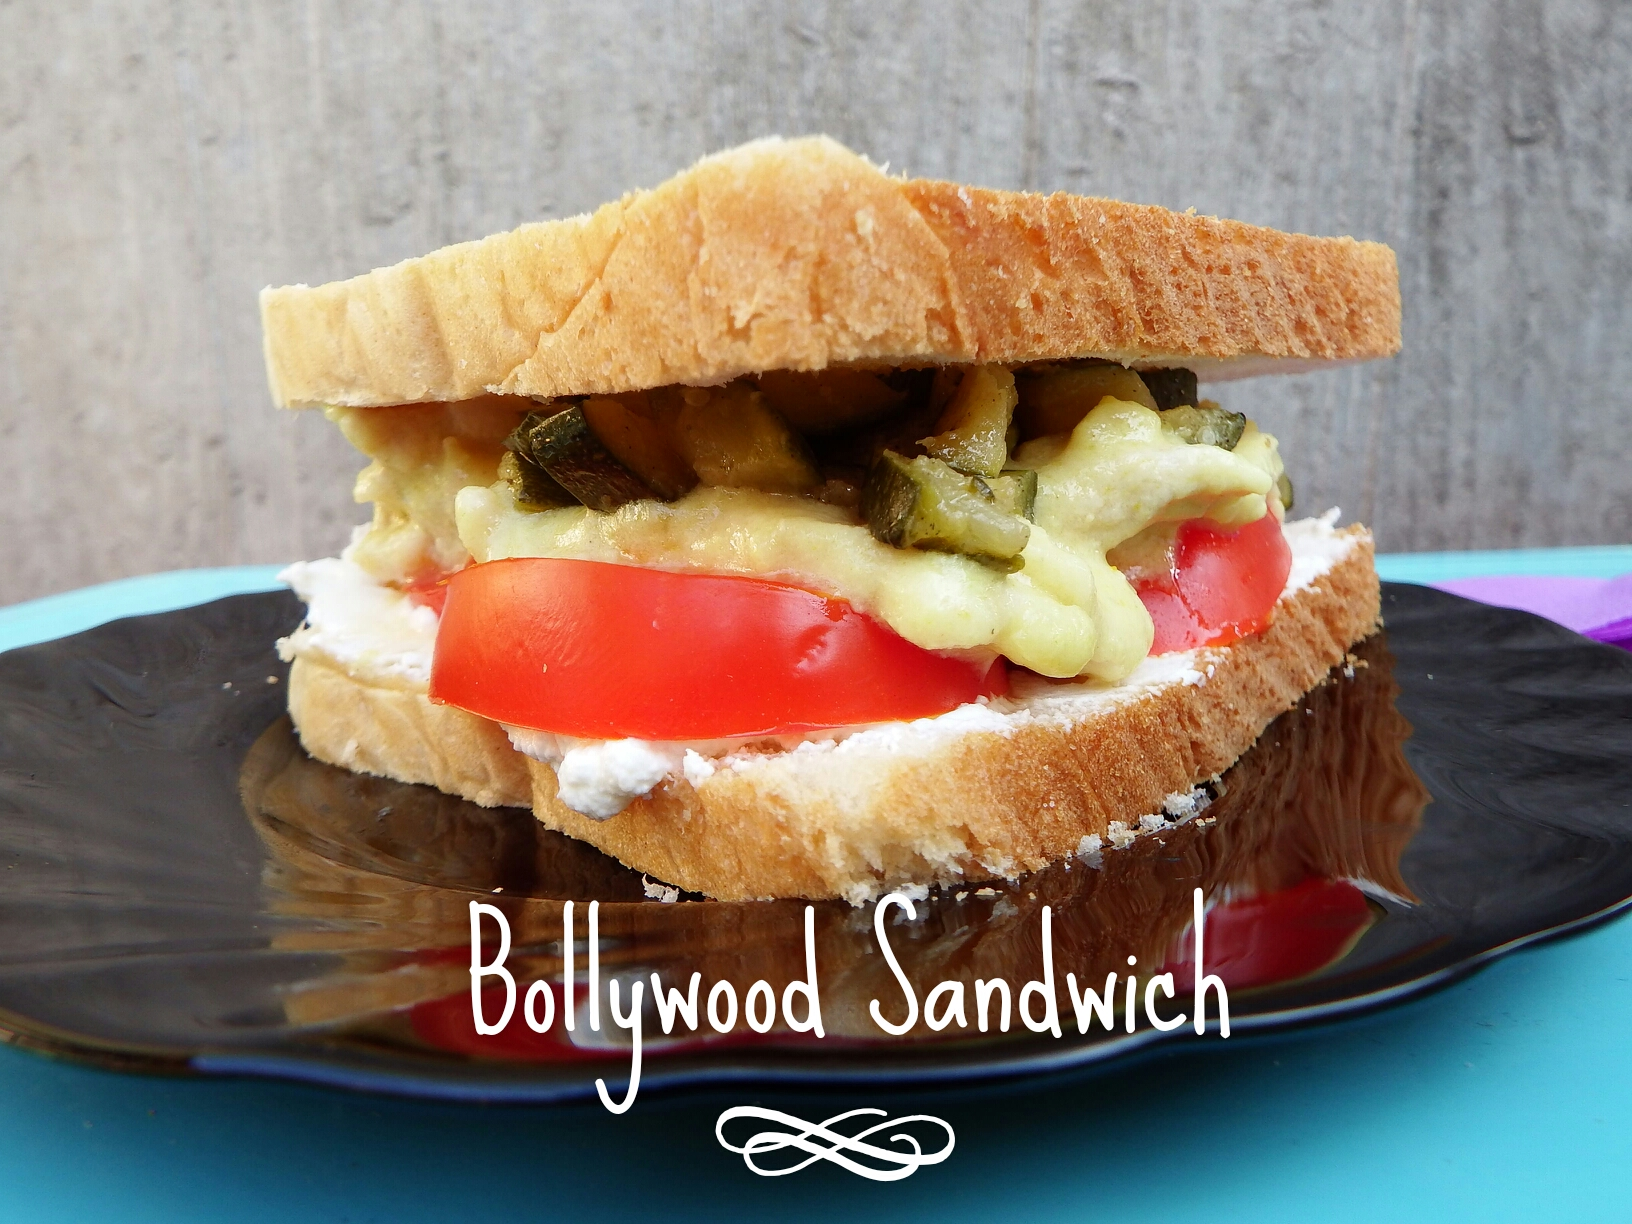 Bollywood Sandwich - panino gourmet